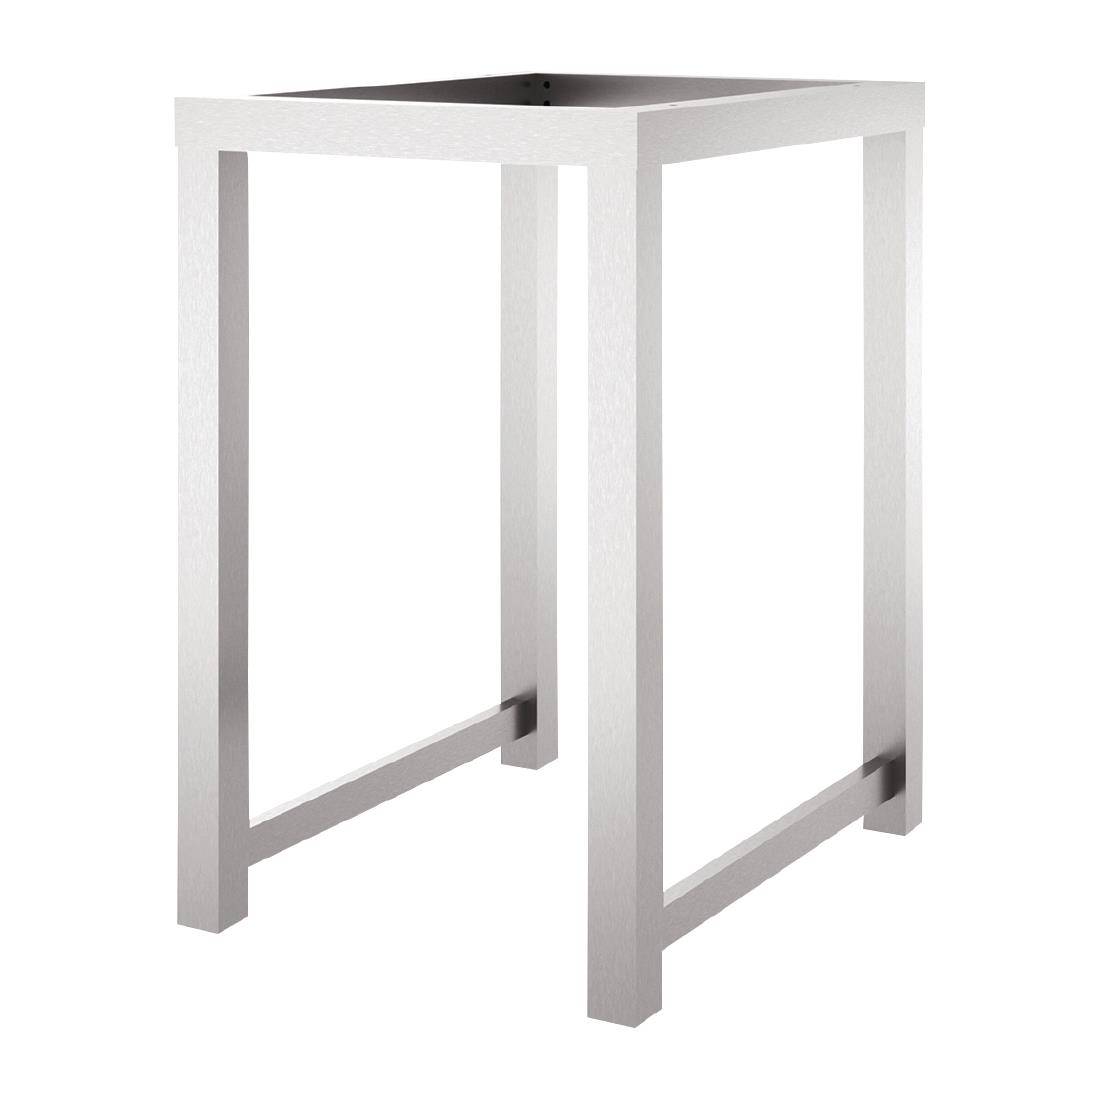 Image of Lainox Stainless Steel Stand CSR101